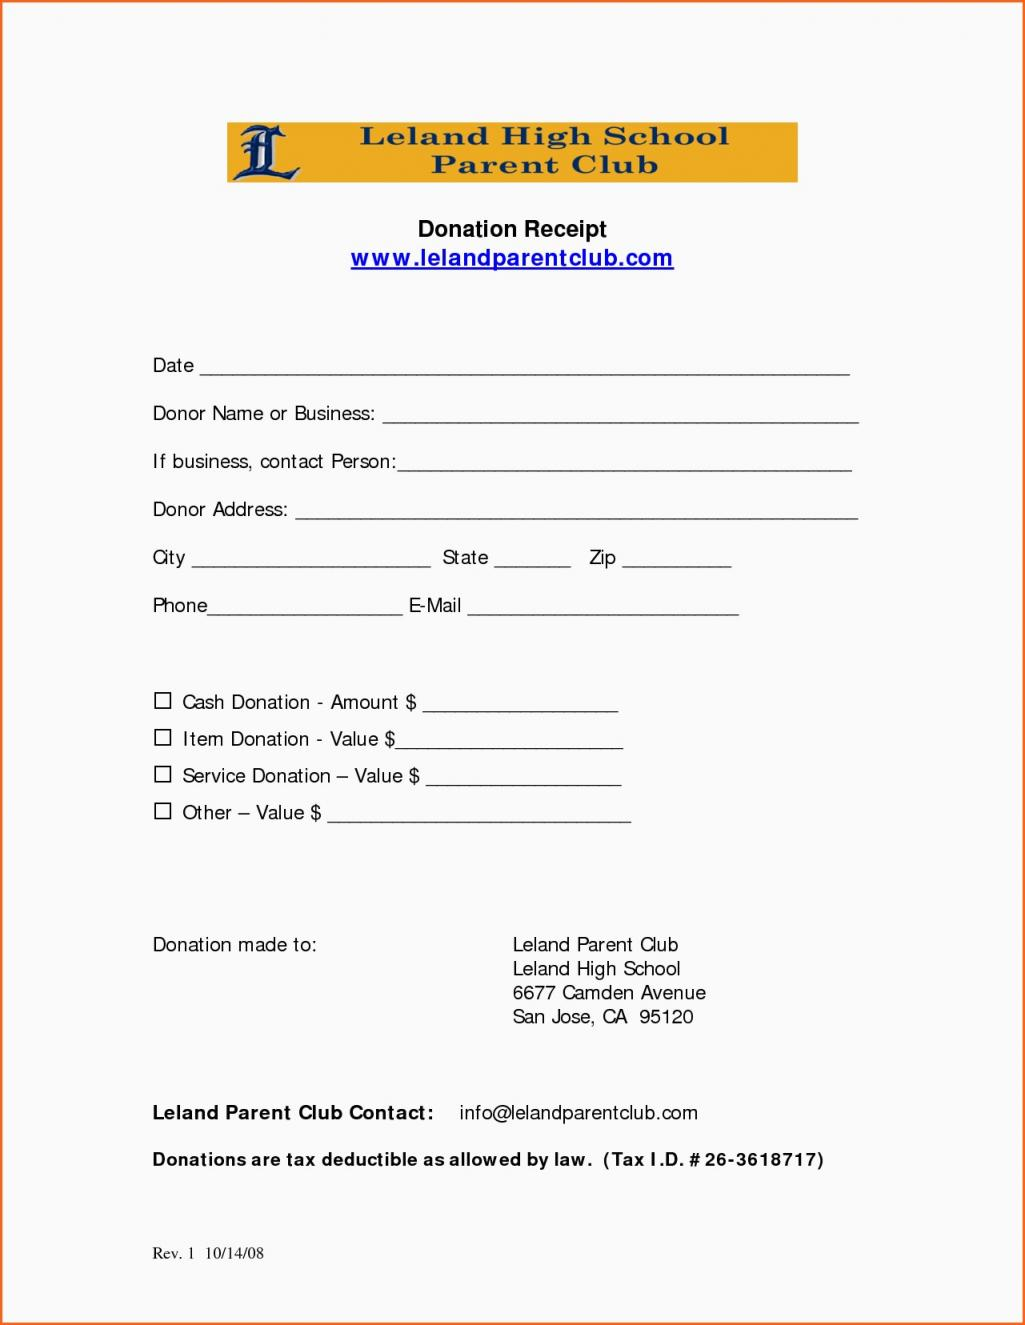 Church Donation Tax Deduction Receipt Template